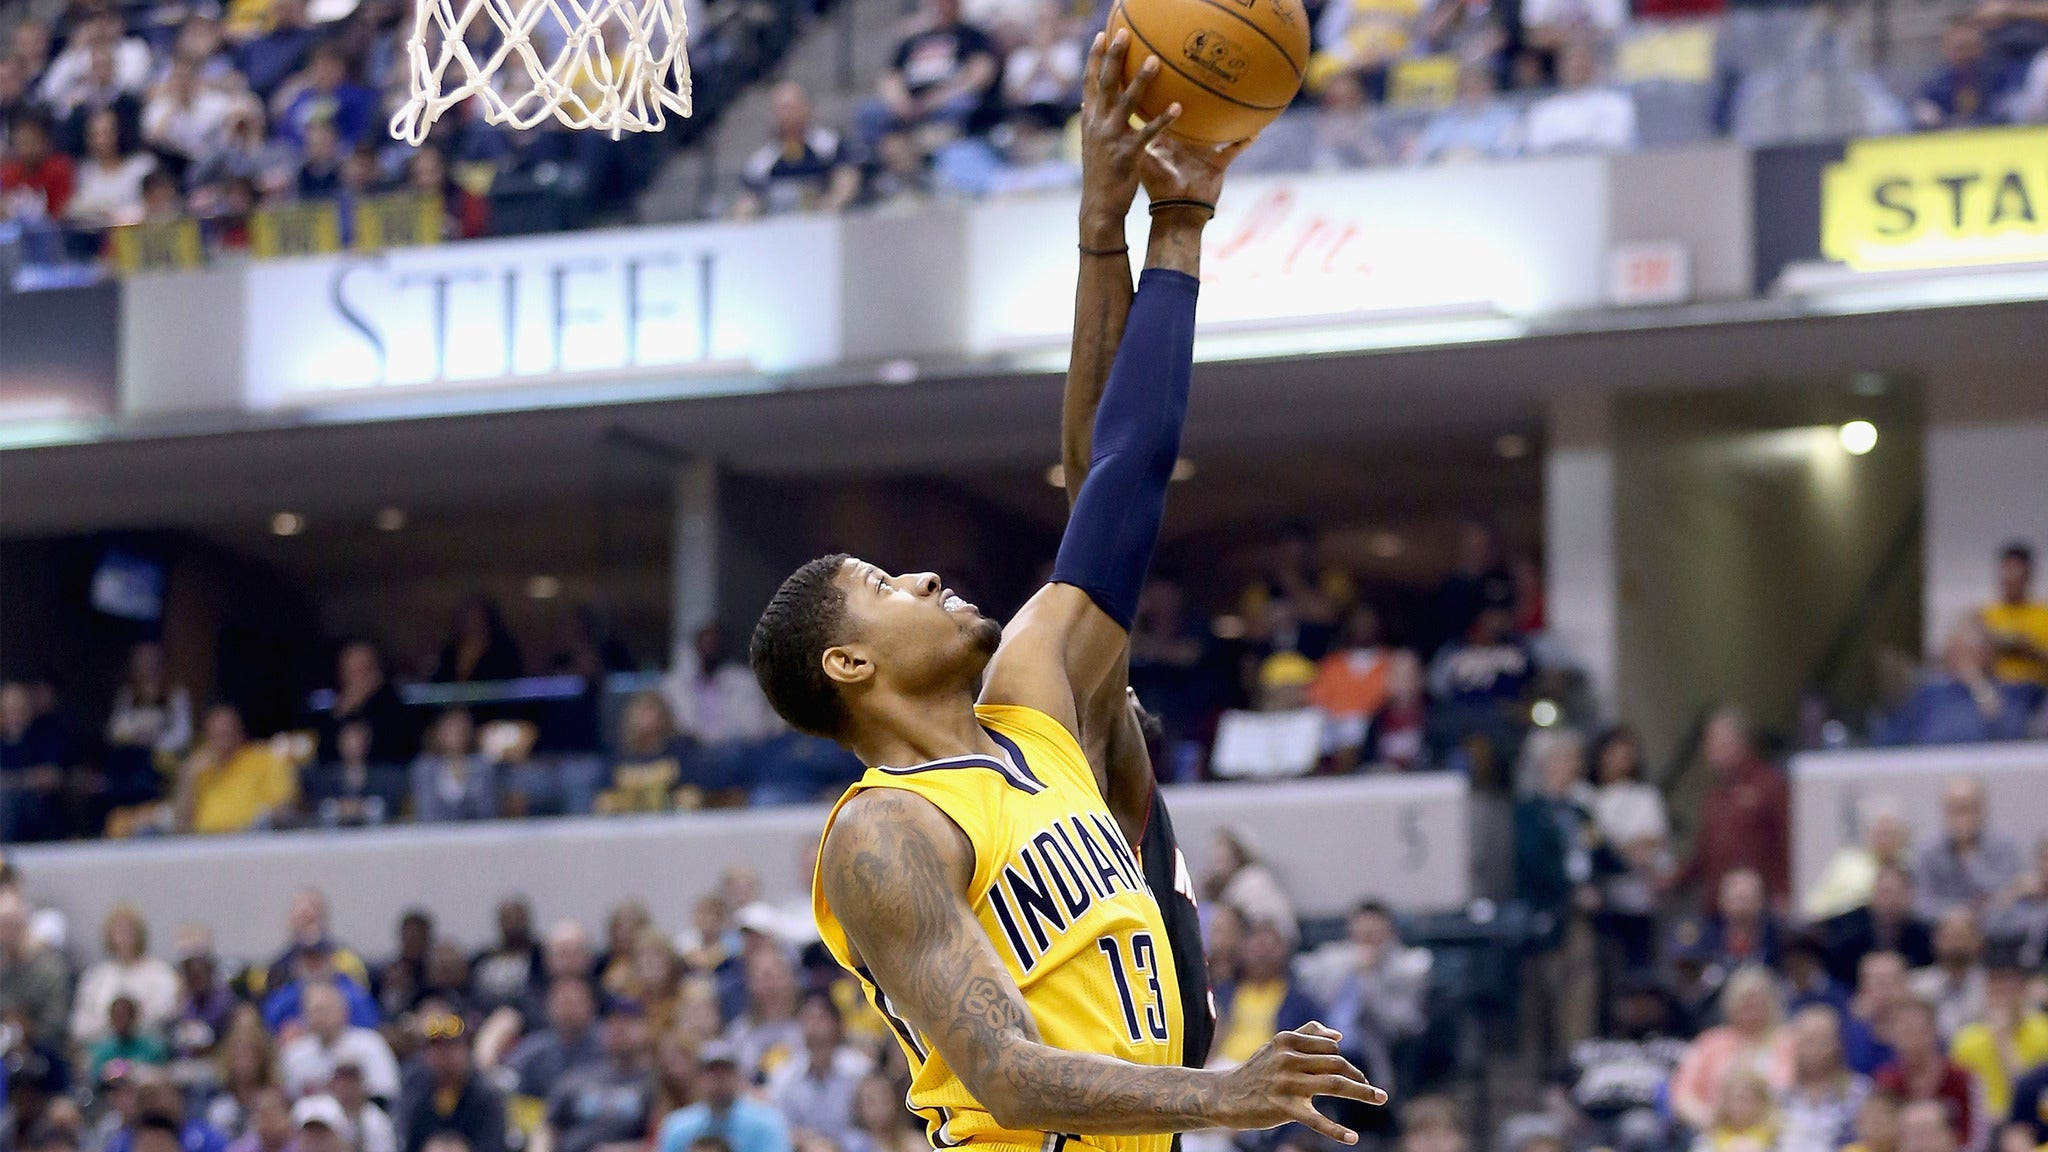 Indiana Pacers vs. Dallas Mavericks